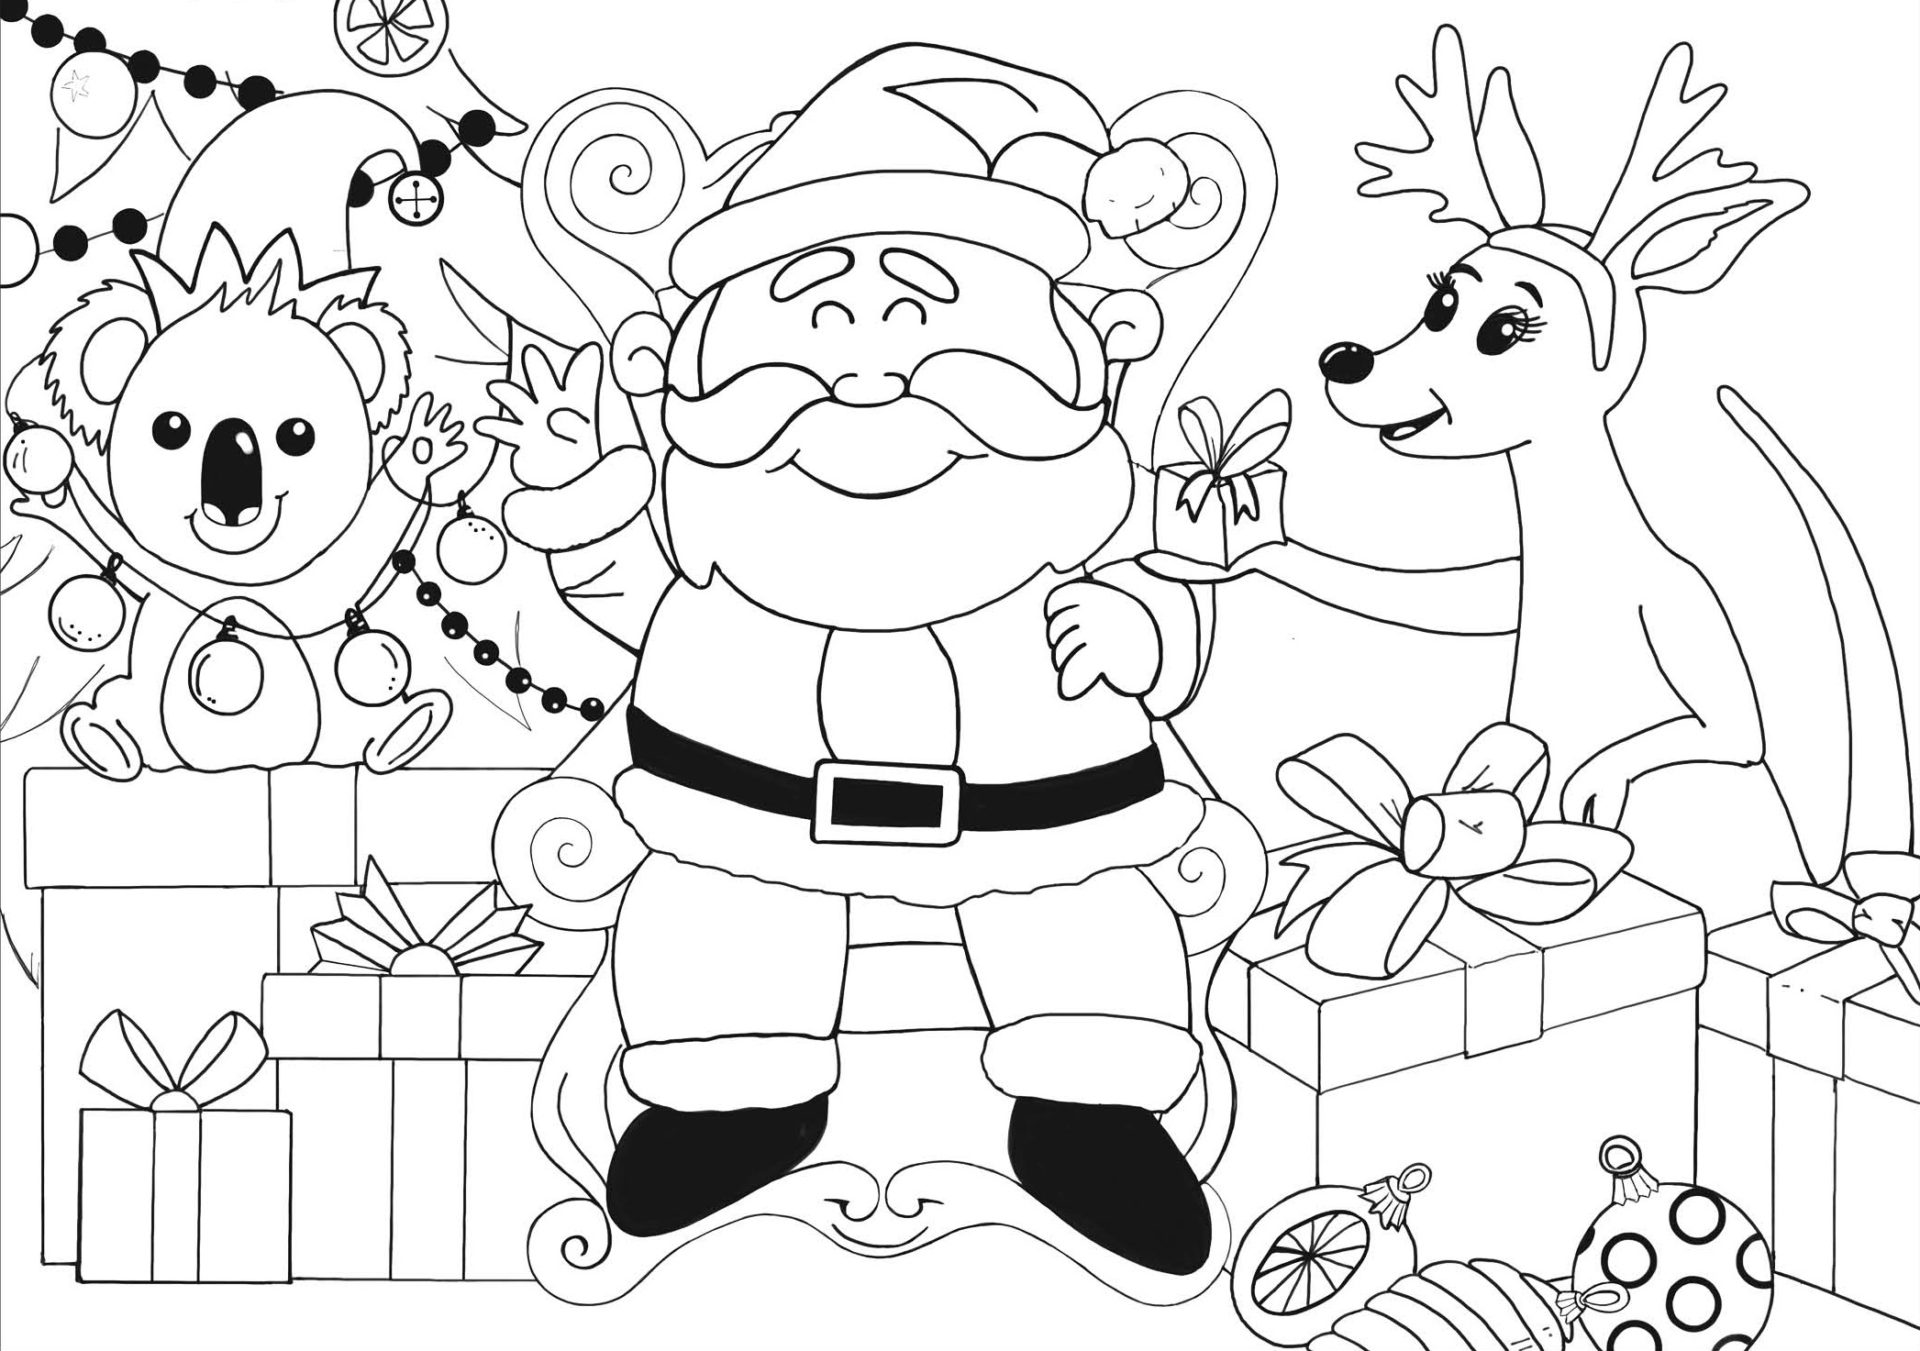 Kids colour in to win this Christmas!